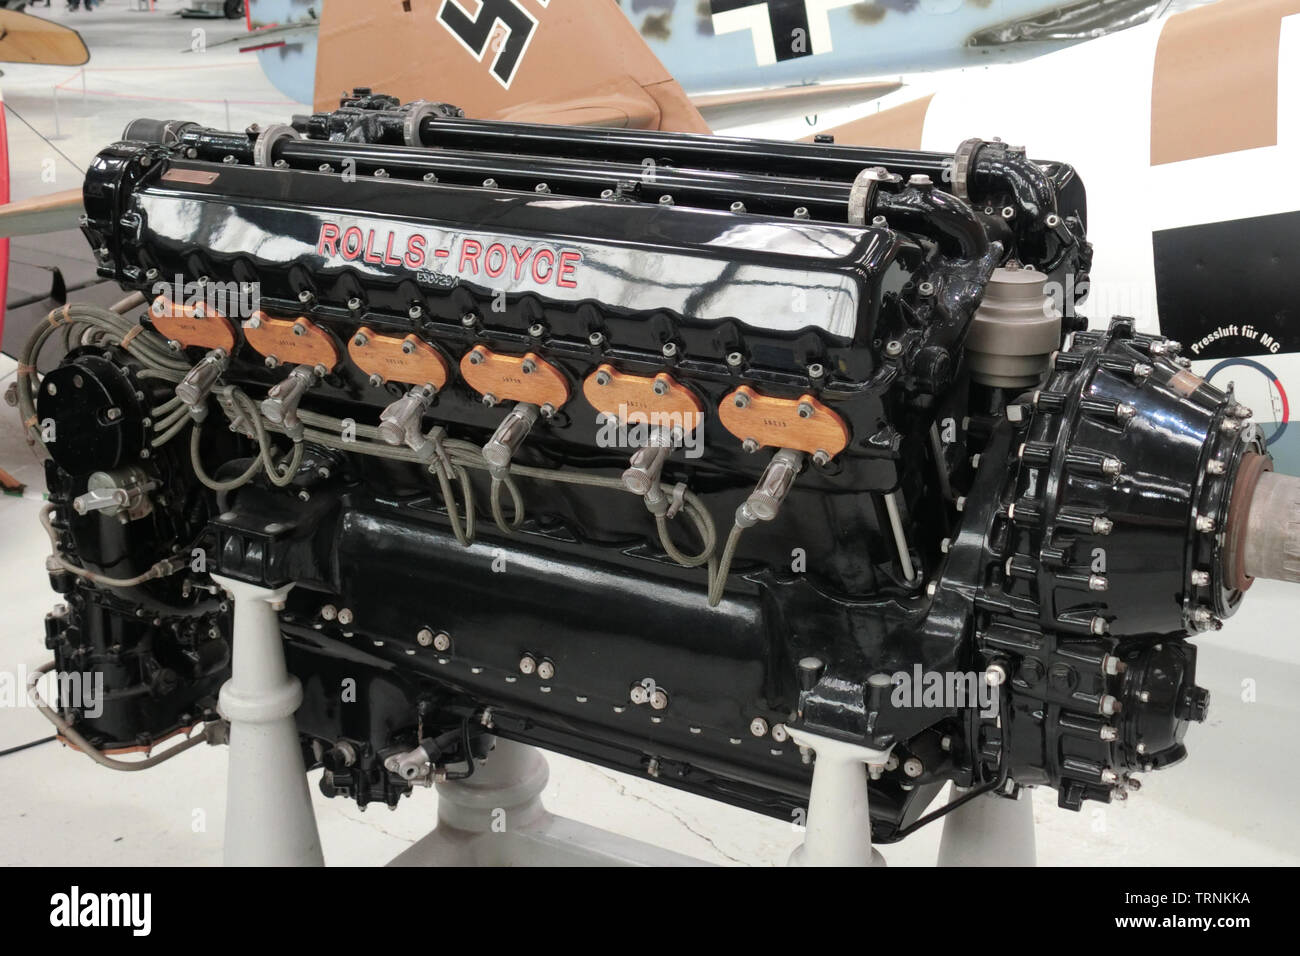 Rolls Royce Kestrel XVI V12 Super Charged Water Cooled Piston Aircraft Engine used in the Hawker Fury and Hawker Hart ( 1930s ) - Stock Image